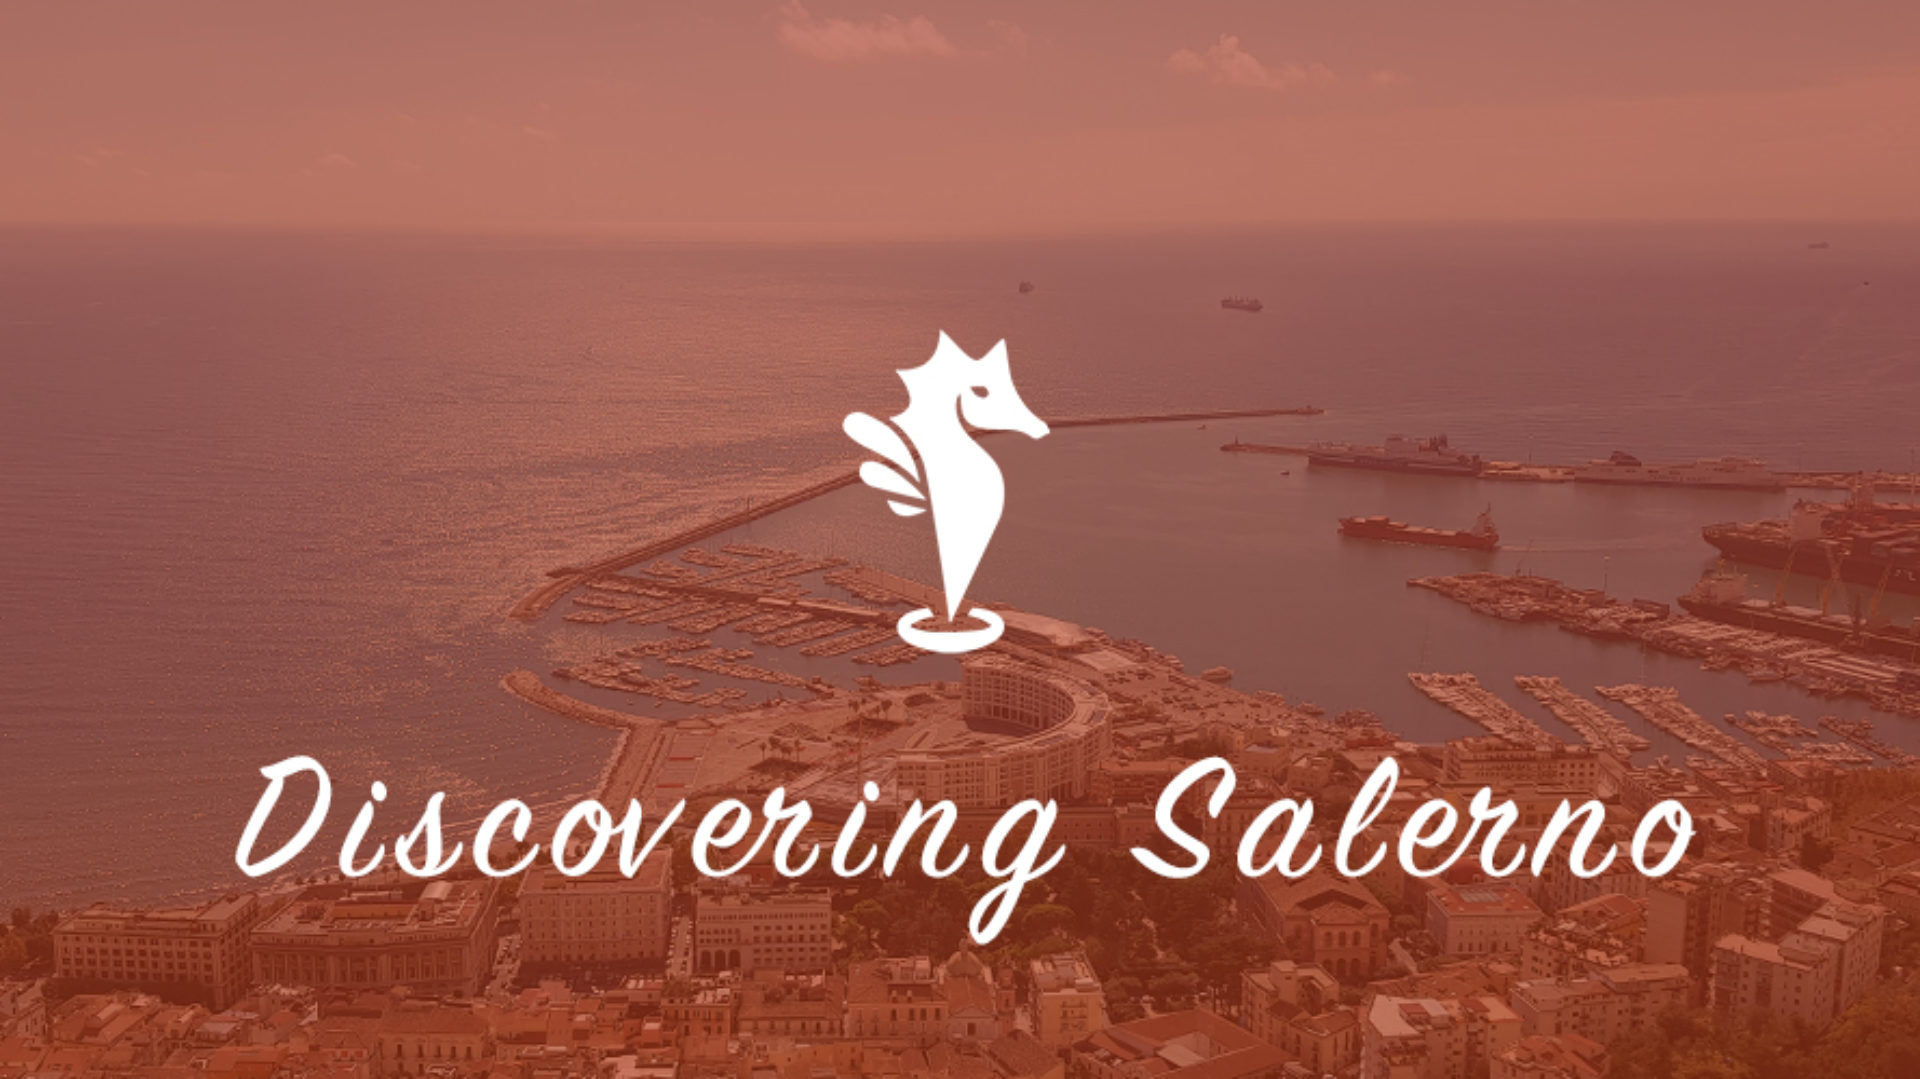 DISCOVERING SALERNO